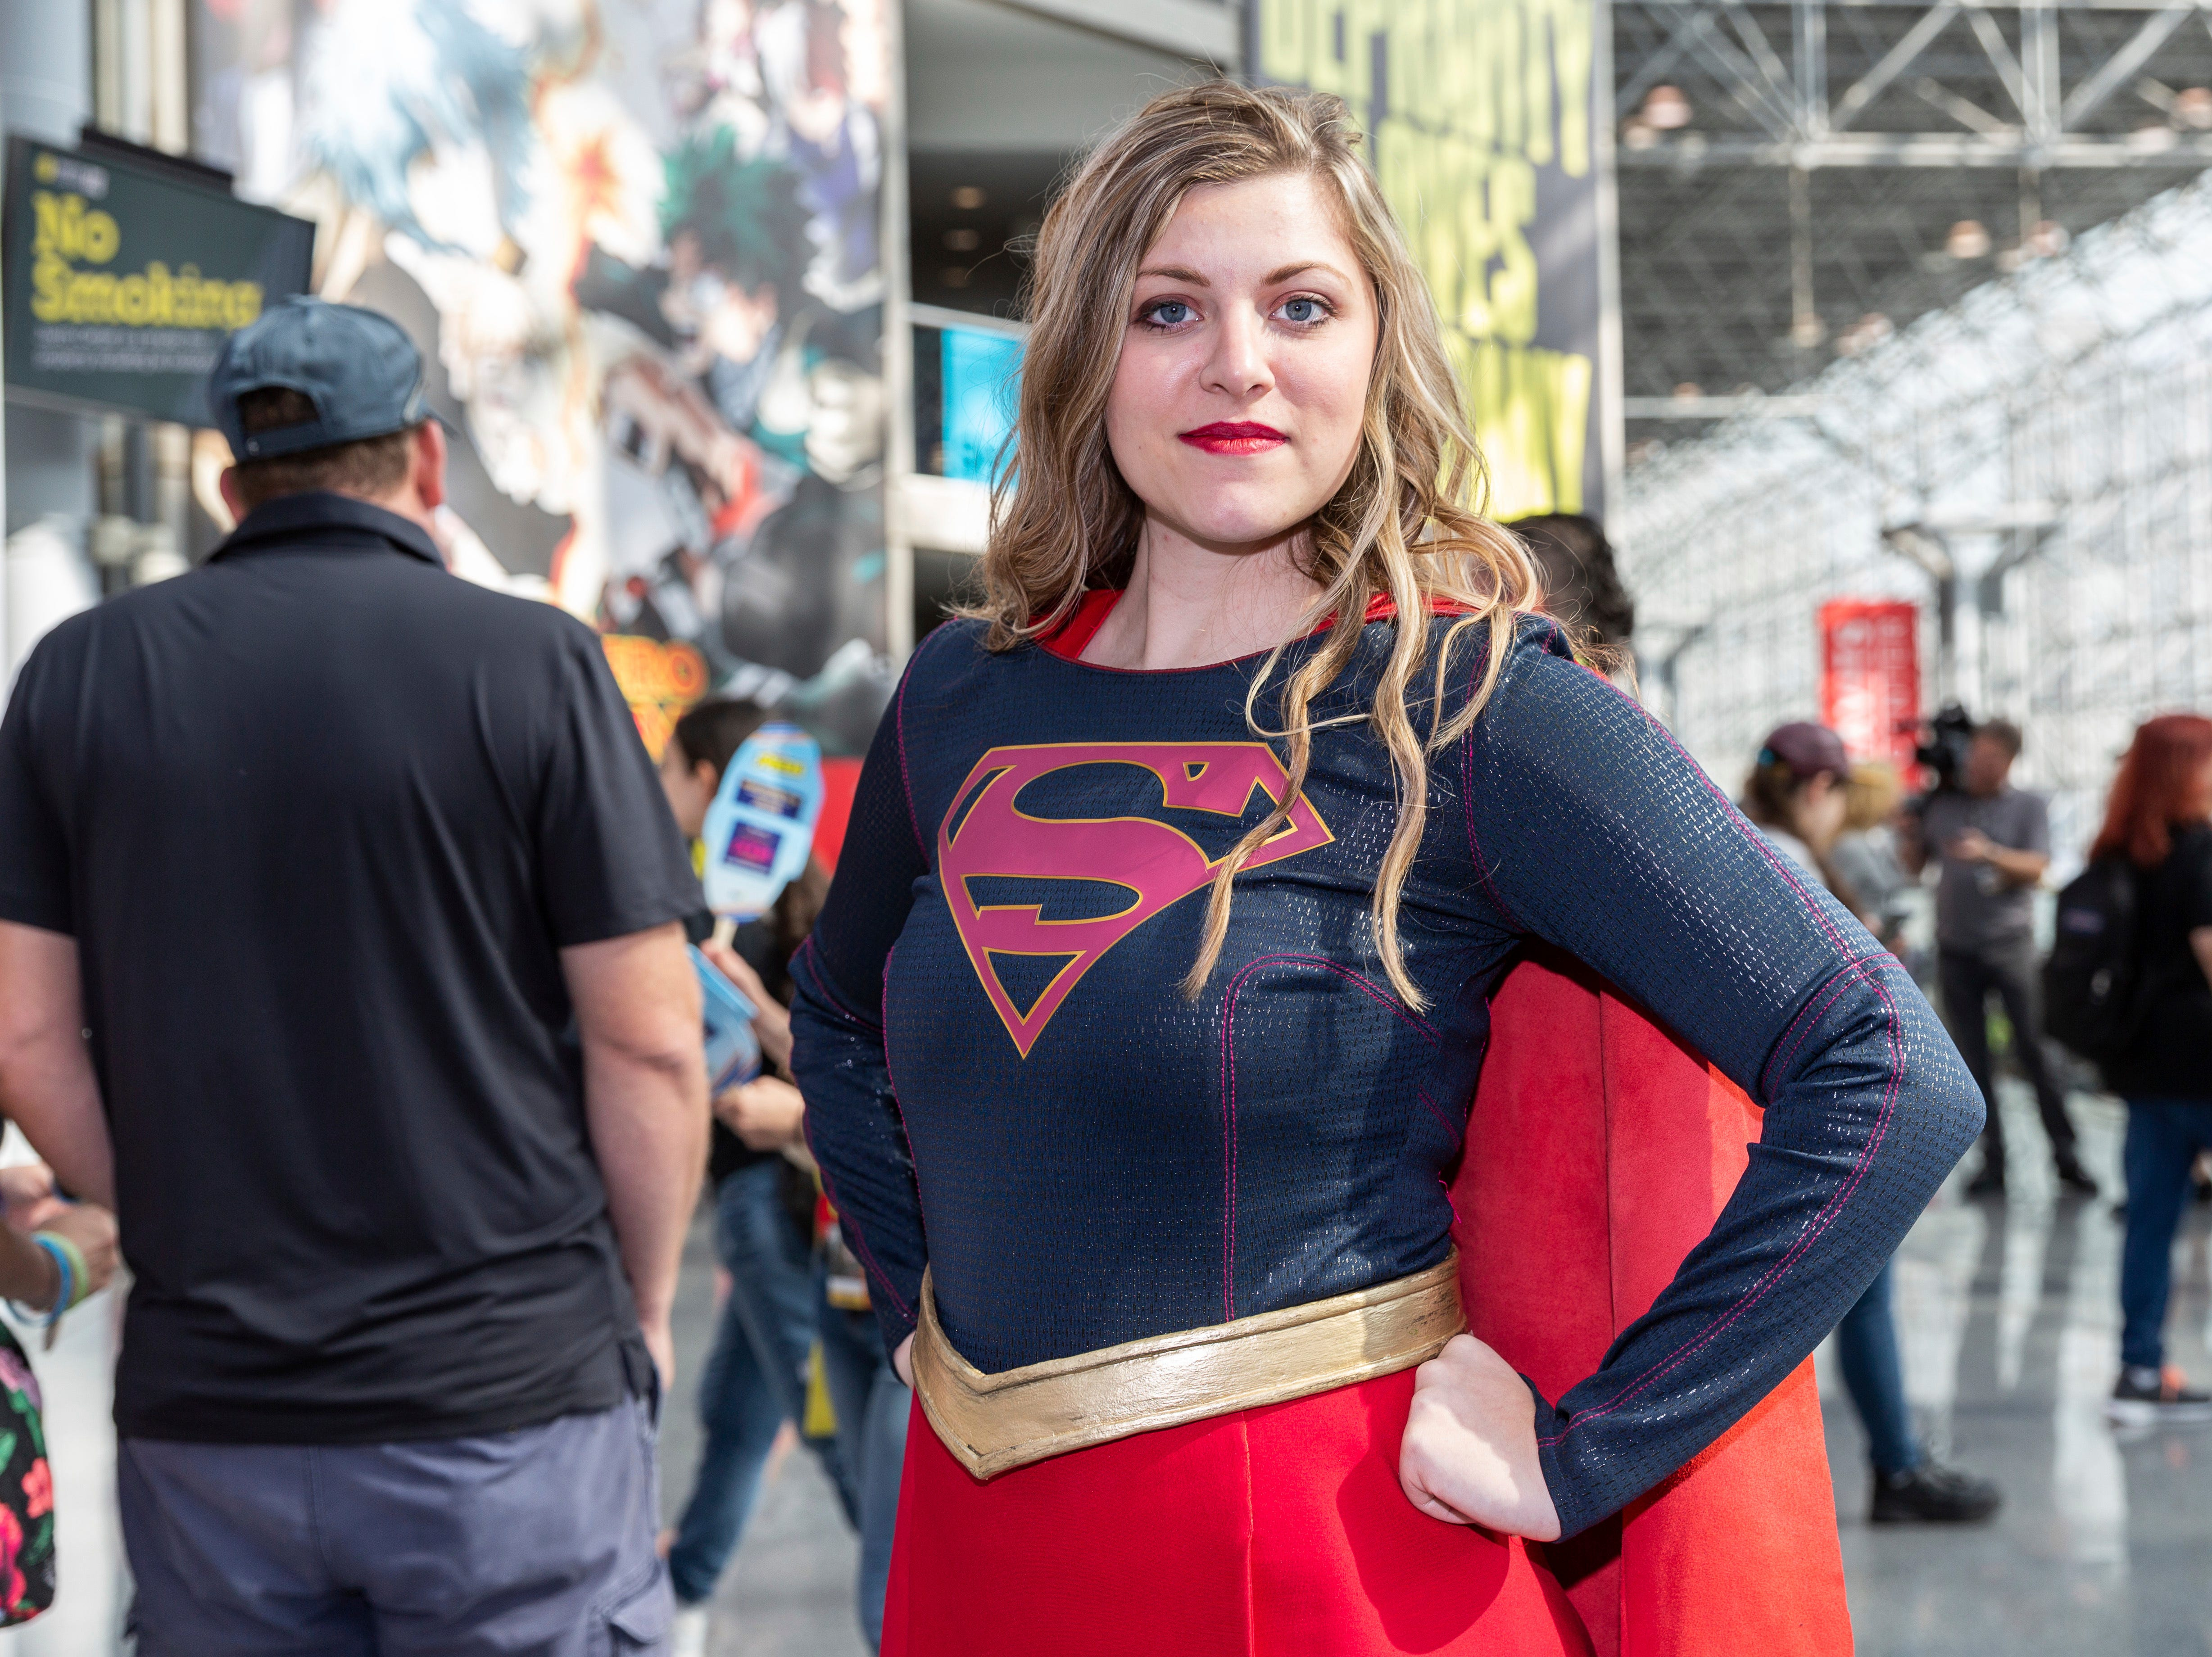 A fan dressed up as Supergirl poses for a photo during the first day of New York Comic Con, Thursday, Oct. 4, 2018. (AP Photo/Steve Luciano)